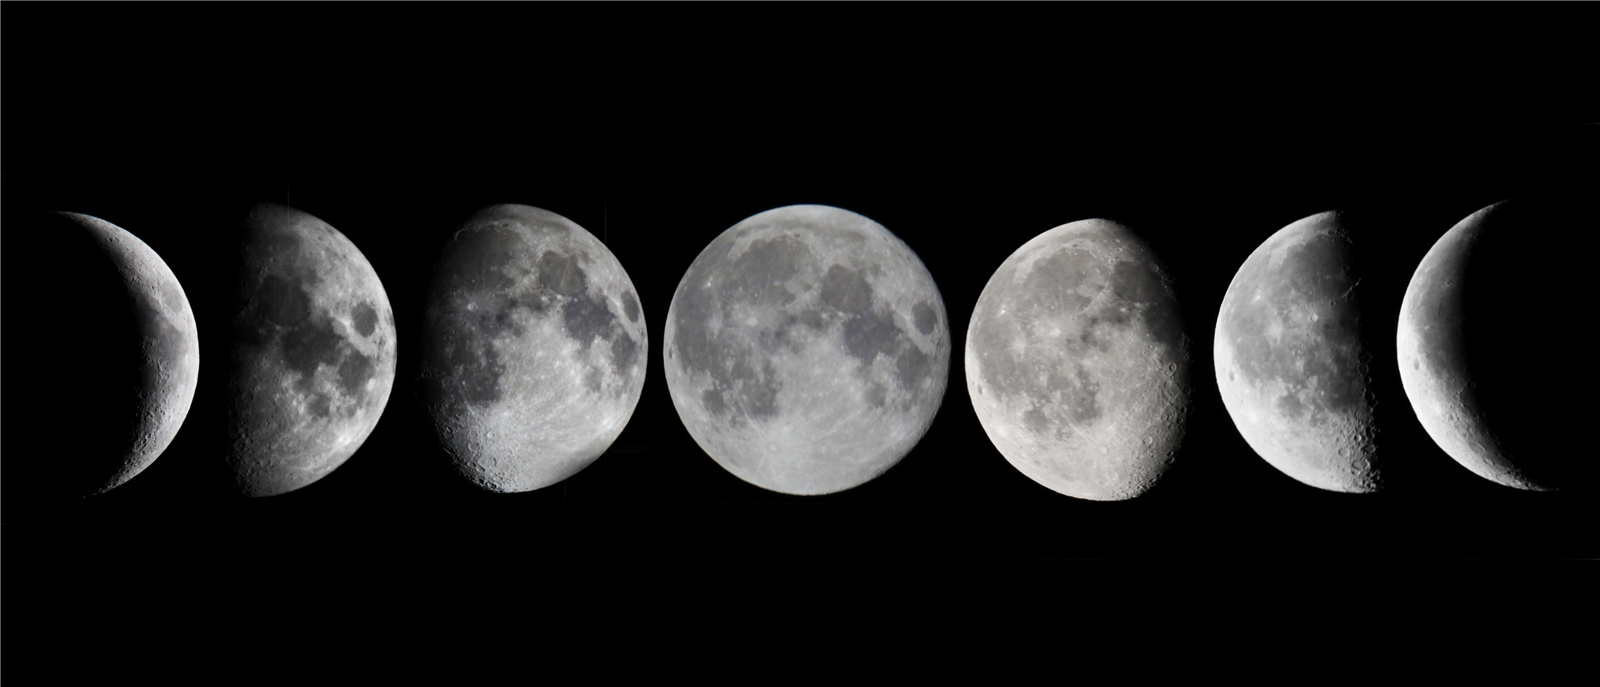 Moon Phases For Kids Interactive 7images of the moon taken